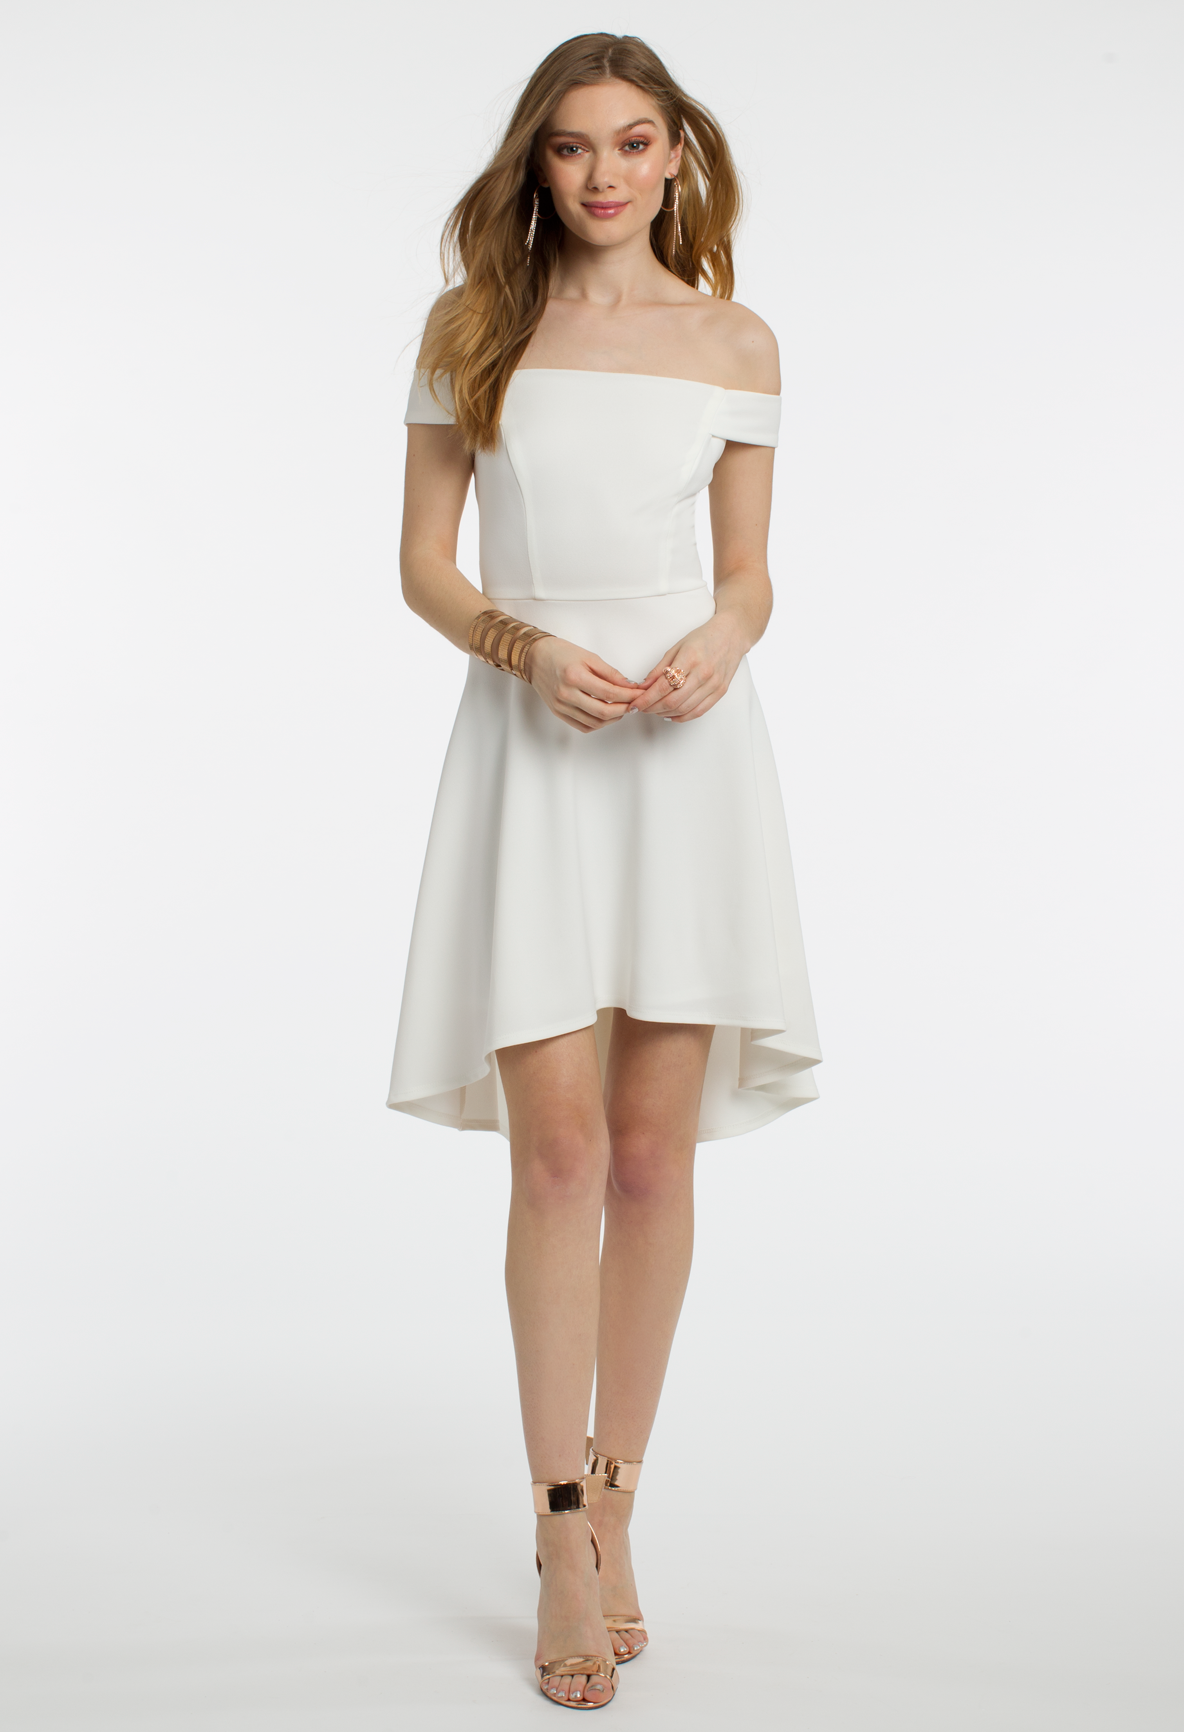 This short cocktail dress is a classic for your closet with its off